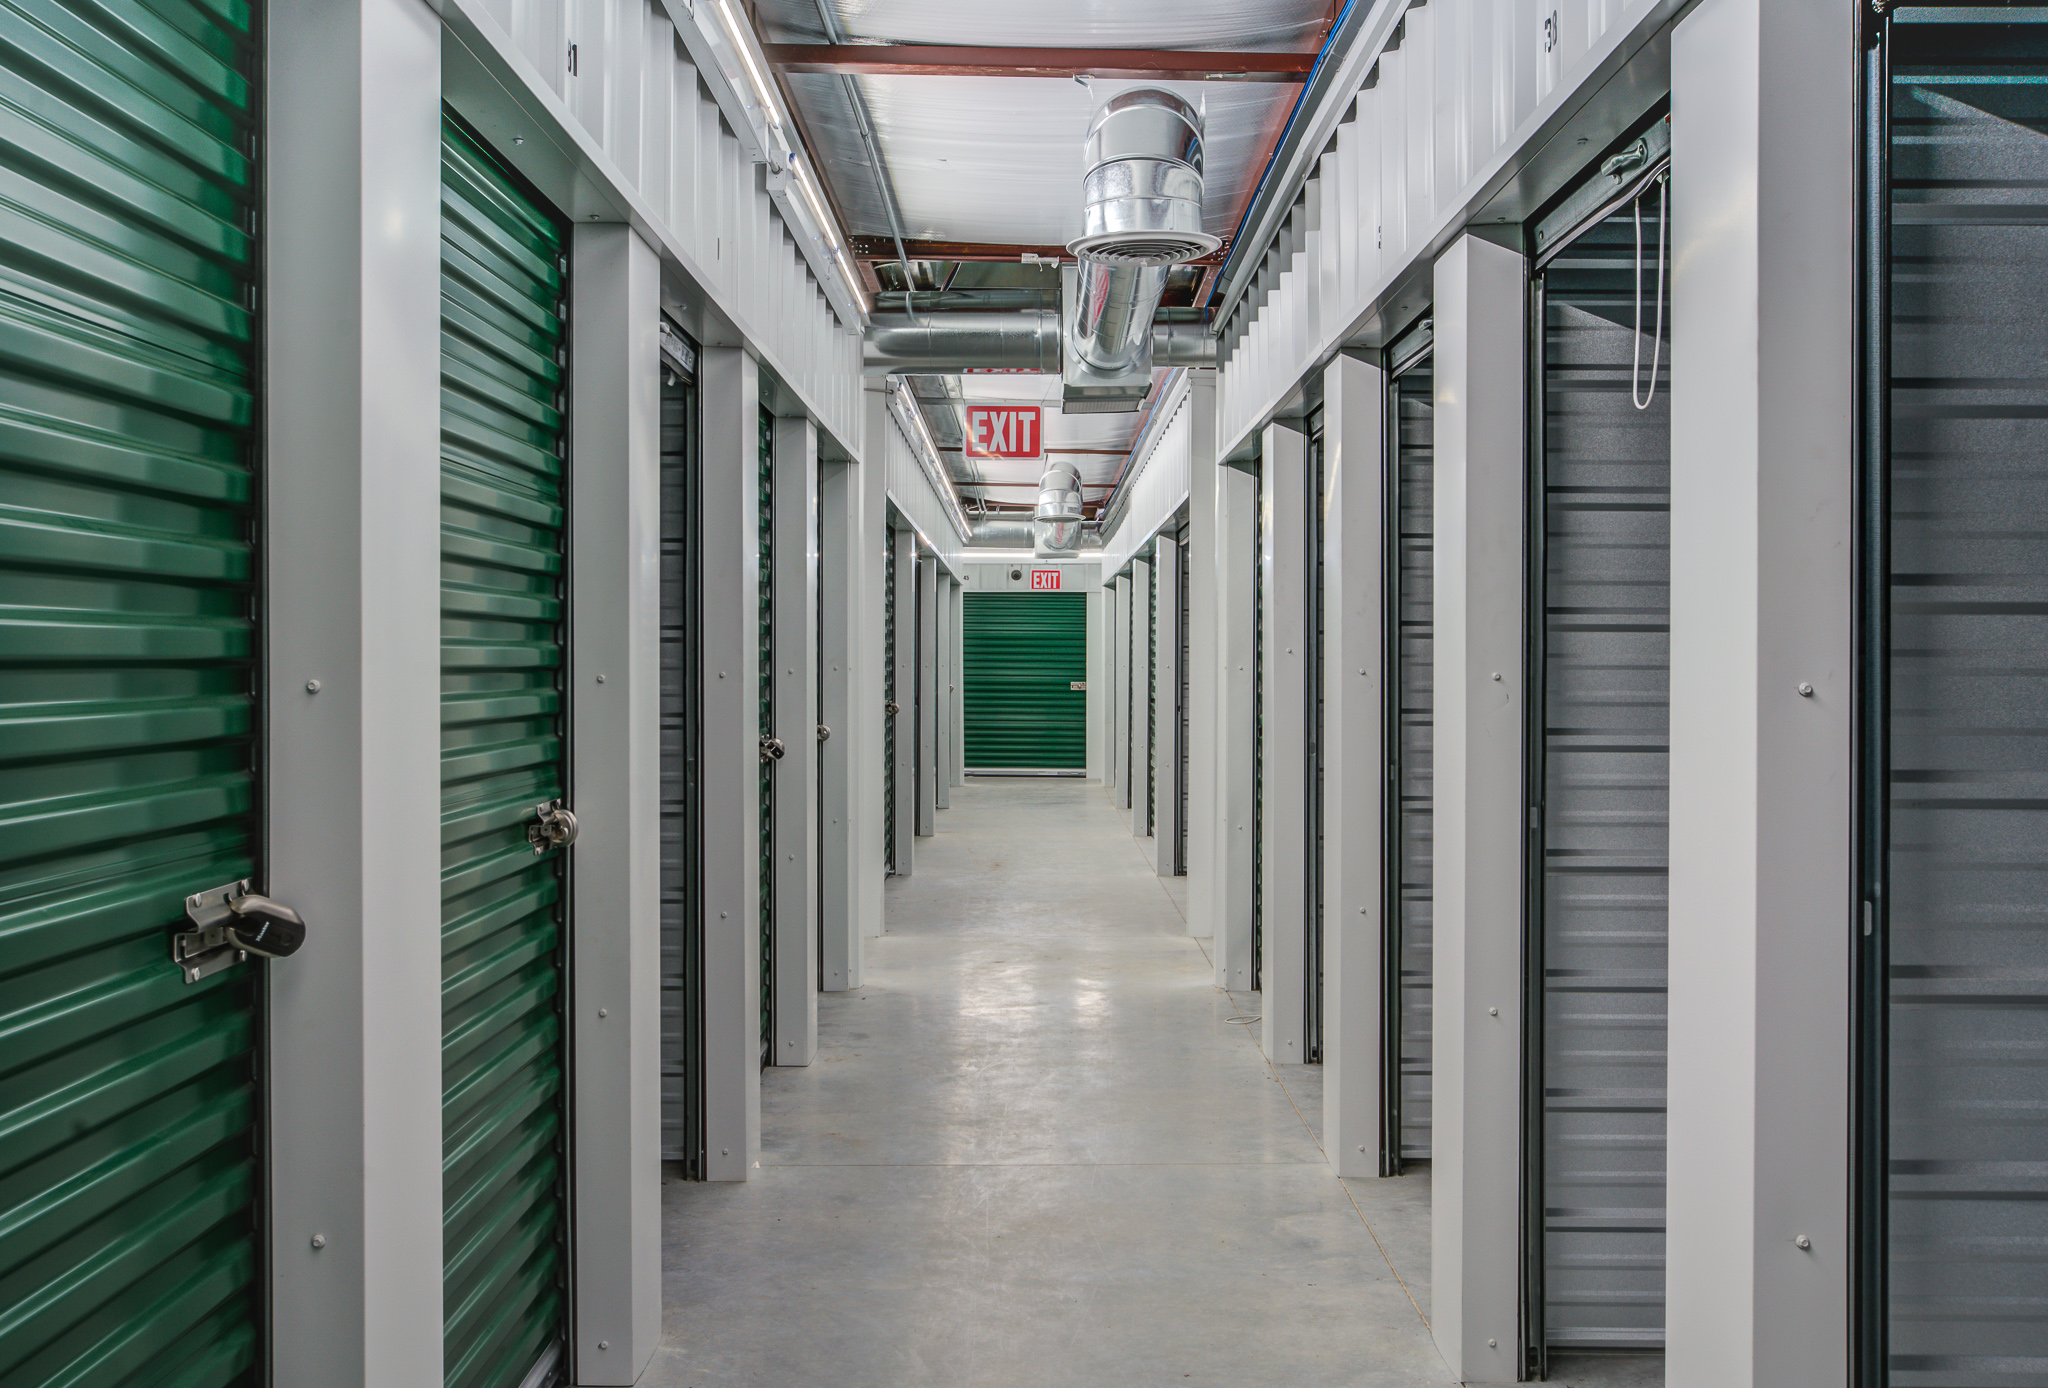 two rows of interior storage units